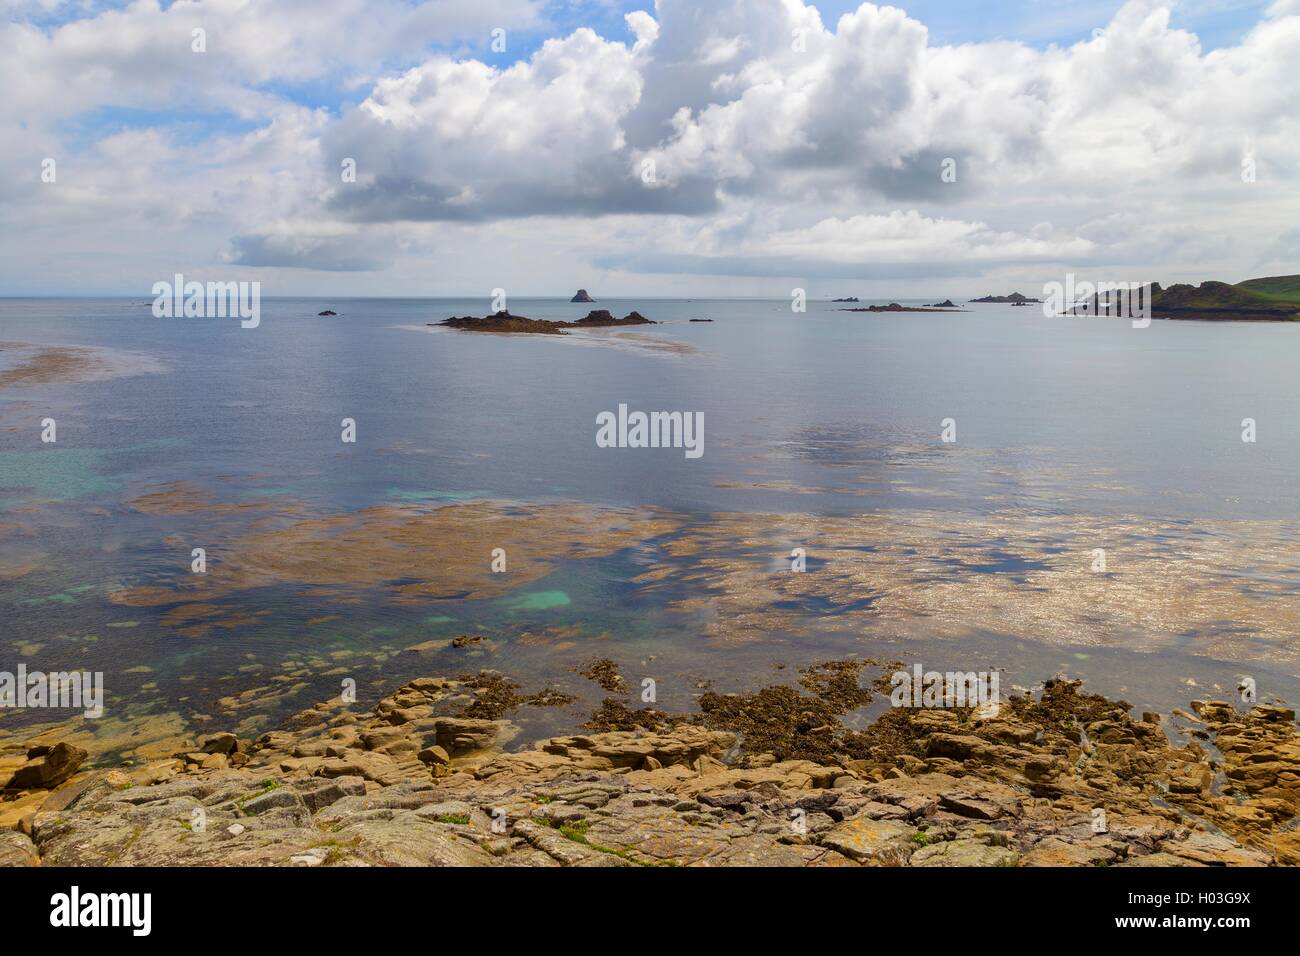 Higher Town Bay, St Martin's, Isles of Scilly, England - Stock Image